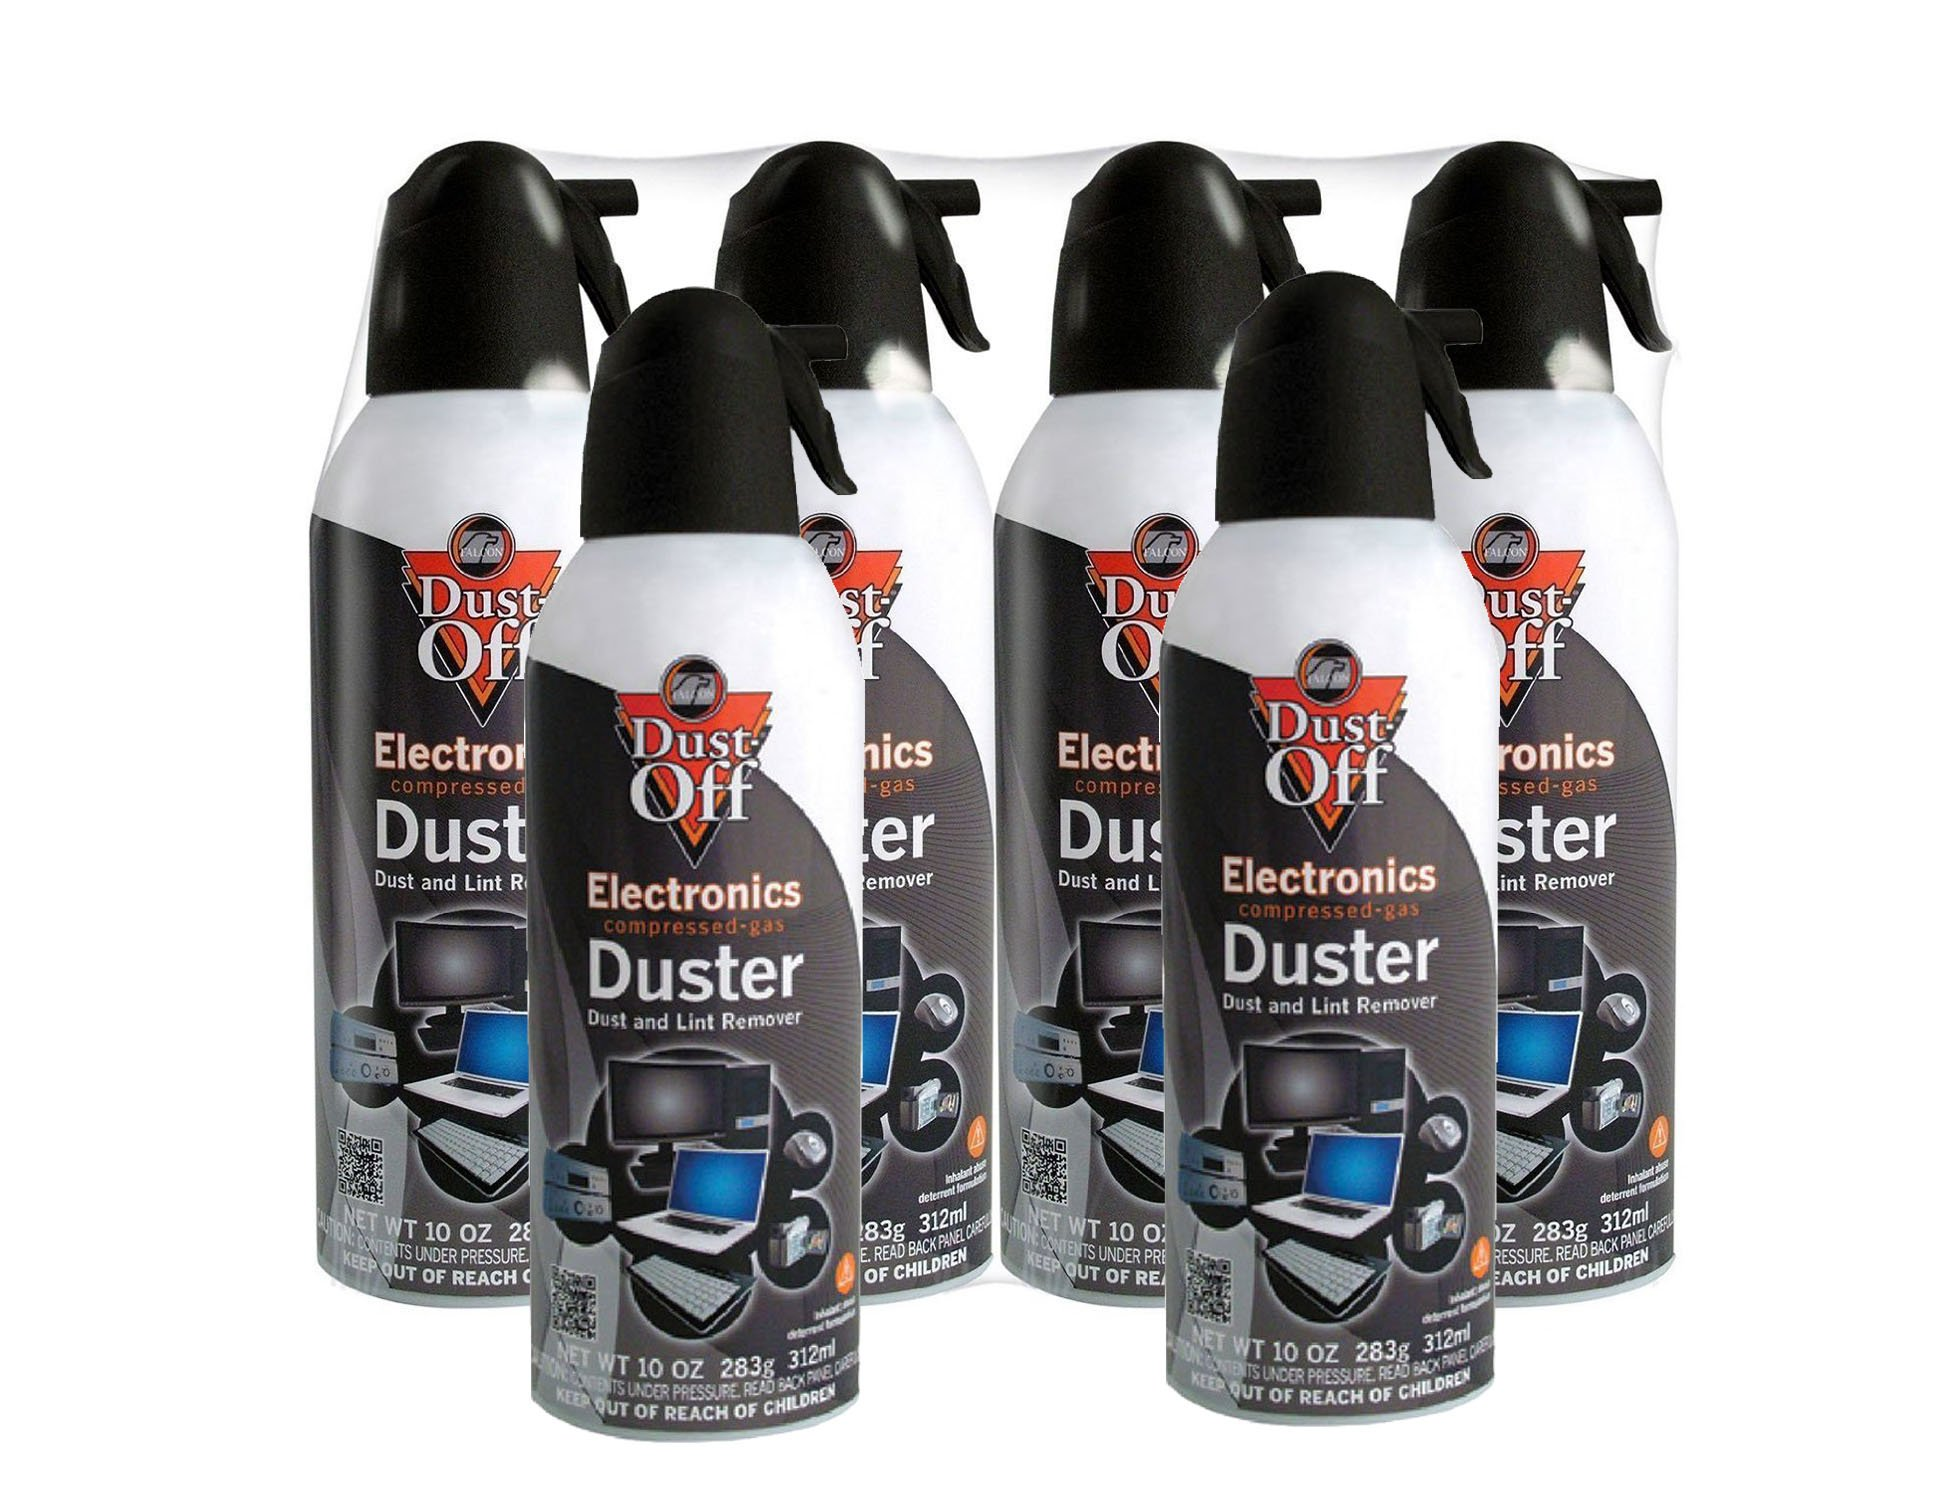 Dust-Off Disposable Compressed Gas Duster, 10 oz Cans, 6 Pack